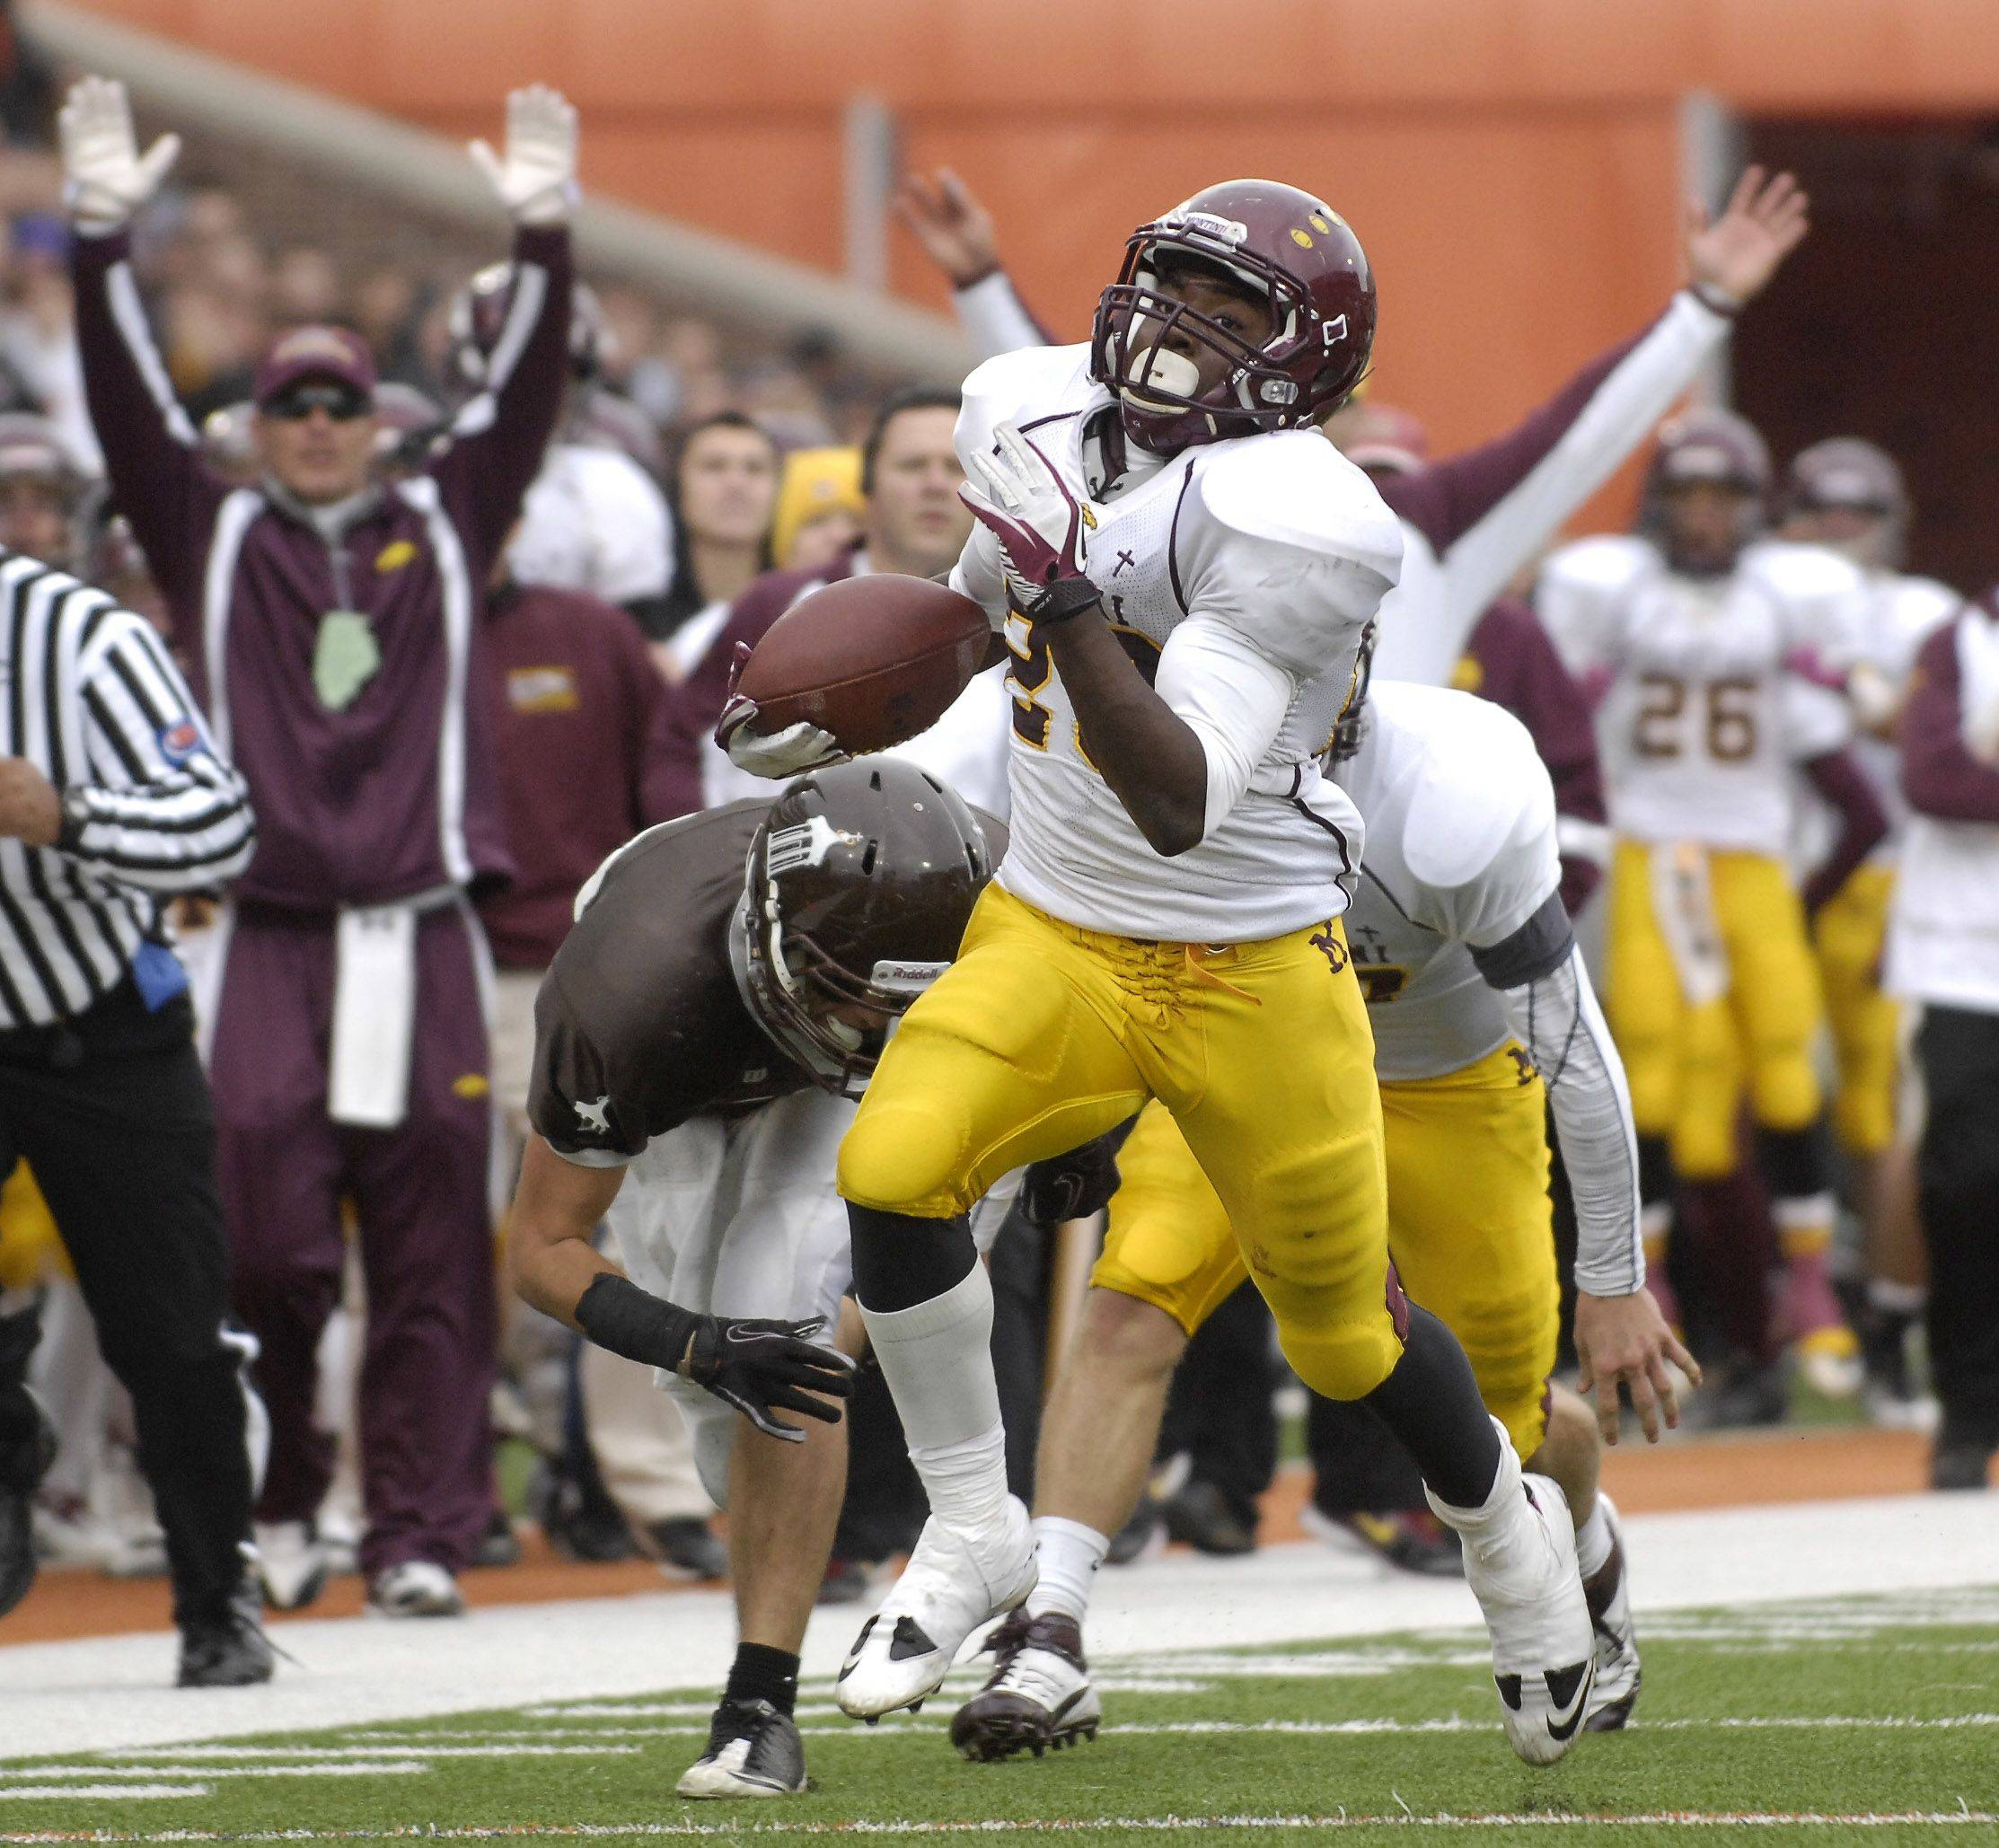 Montini's Dimitri Taylor scores on a 30-yard touchdown run in the third quarter during the Class 5A state championship in Champaign on Saturday.